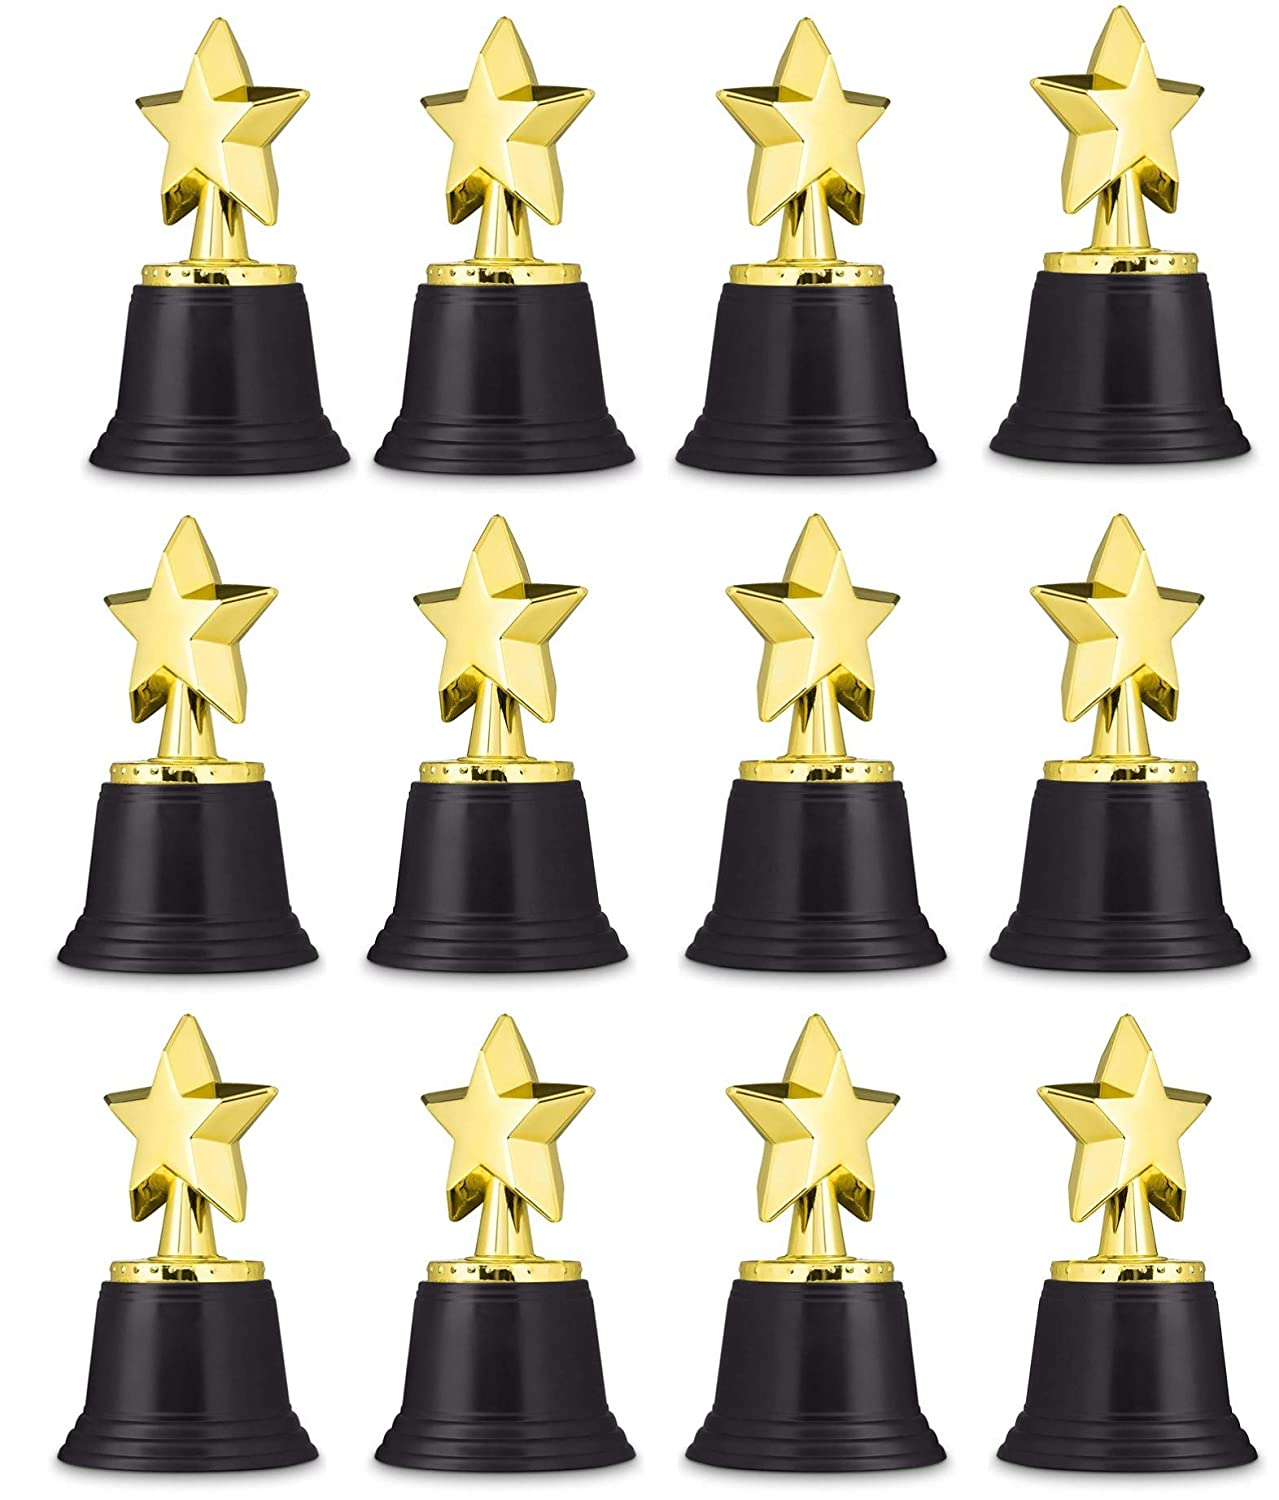 "Neliblu Star Gold Award Trophies 4.5"" Gold Star Trophy for Awards, Winners, Oscar Awards and Hollywood Parties Bulk Pack of 12"